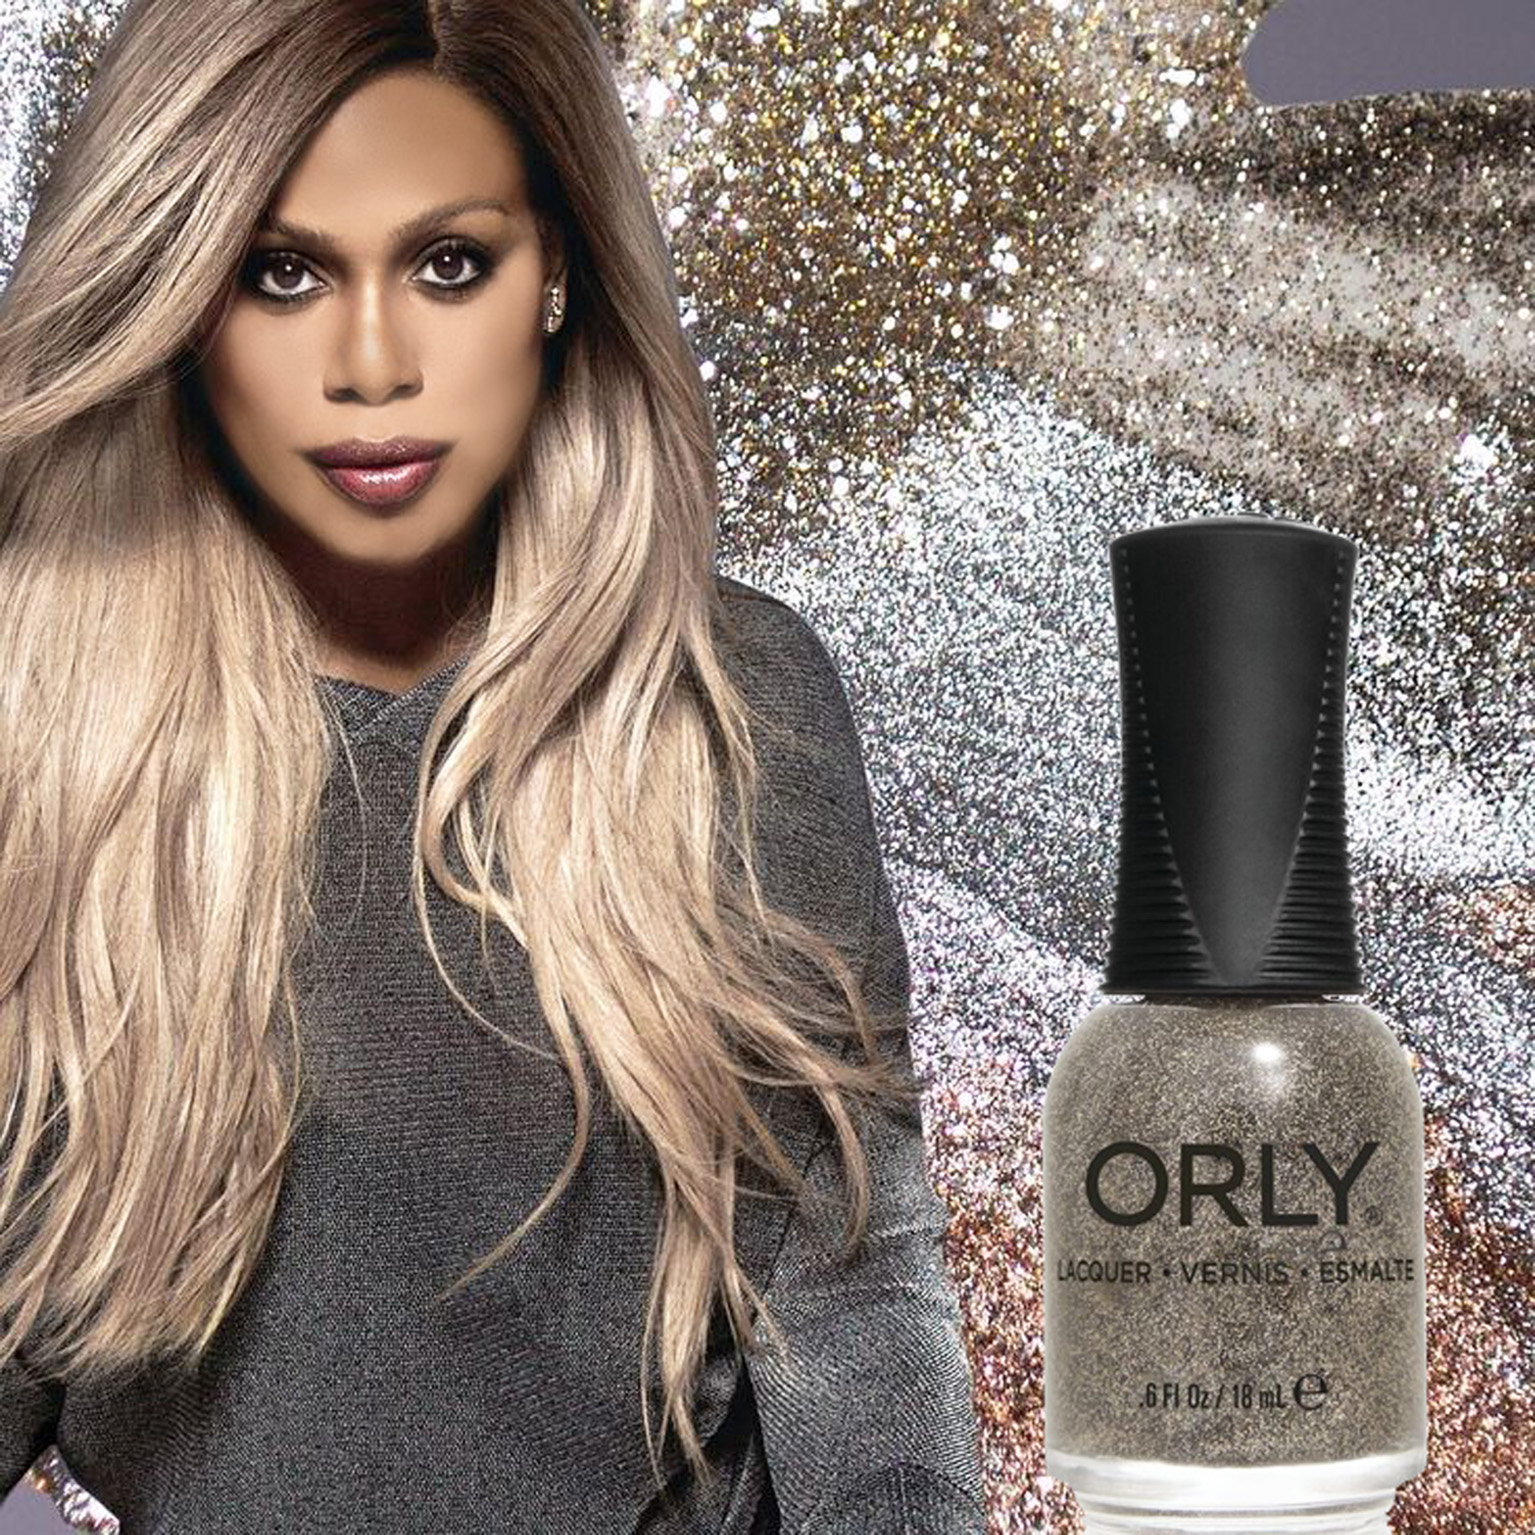 LAVERNE COX BY -  ORLY